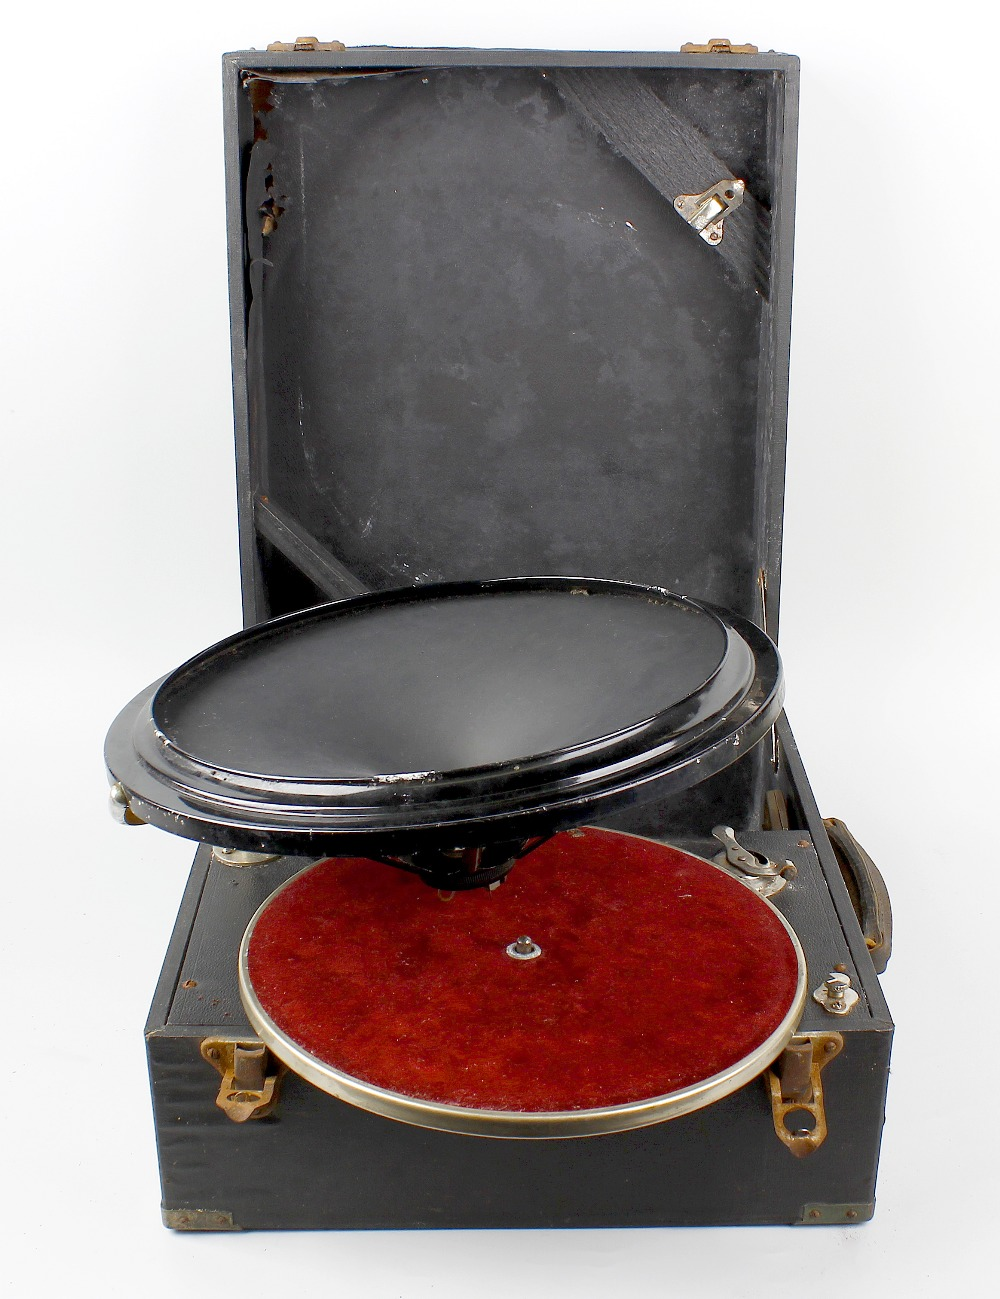 Lot 458 - A portable gramophone with Phonos speaker / playing head system, a 19th century rectangular box with